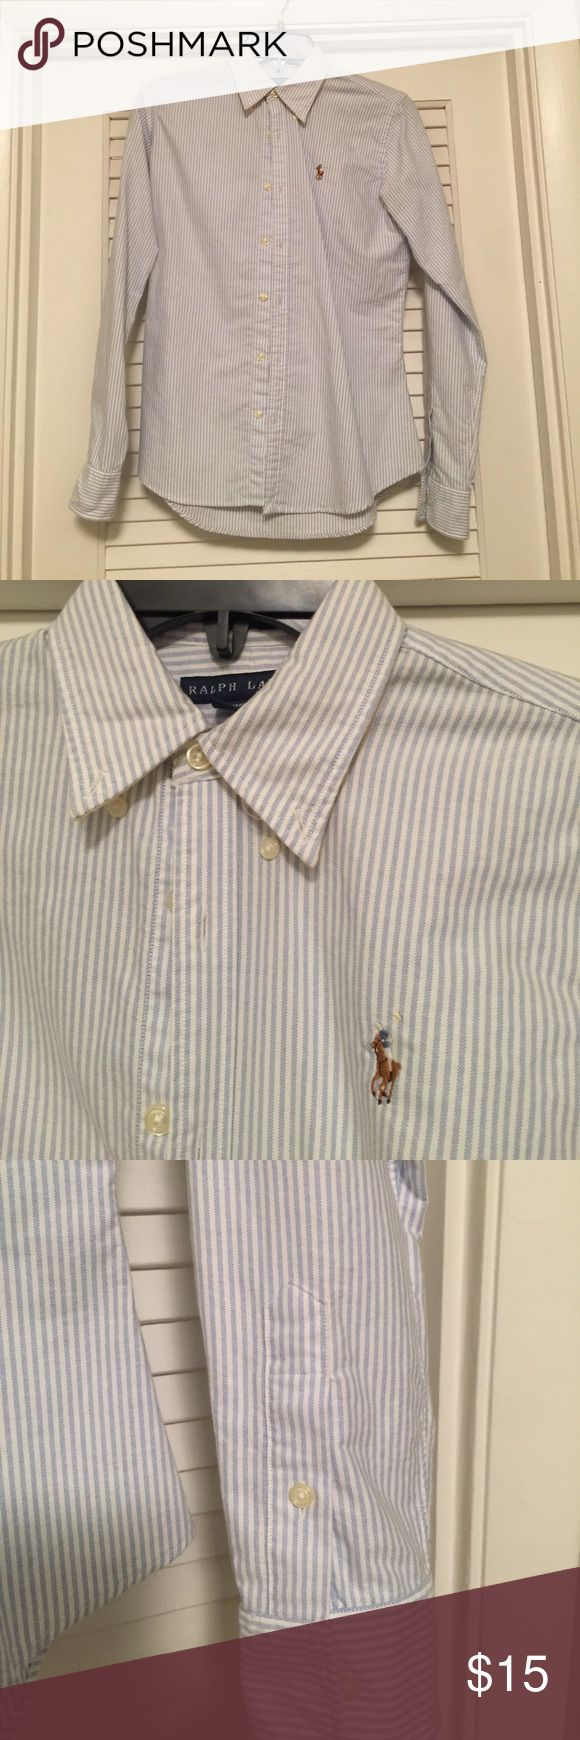 Ralph Lauren women's oxford shirt Lightly worn blue and white striped oxford shirt from Ralph Lauren Ralph Lauren Tops Button Down Shirts